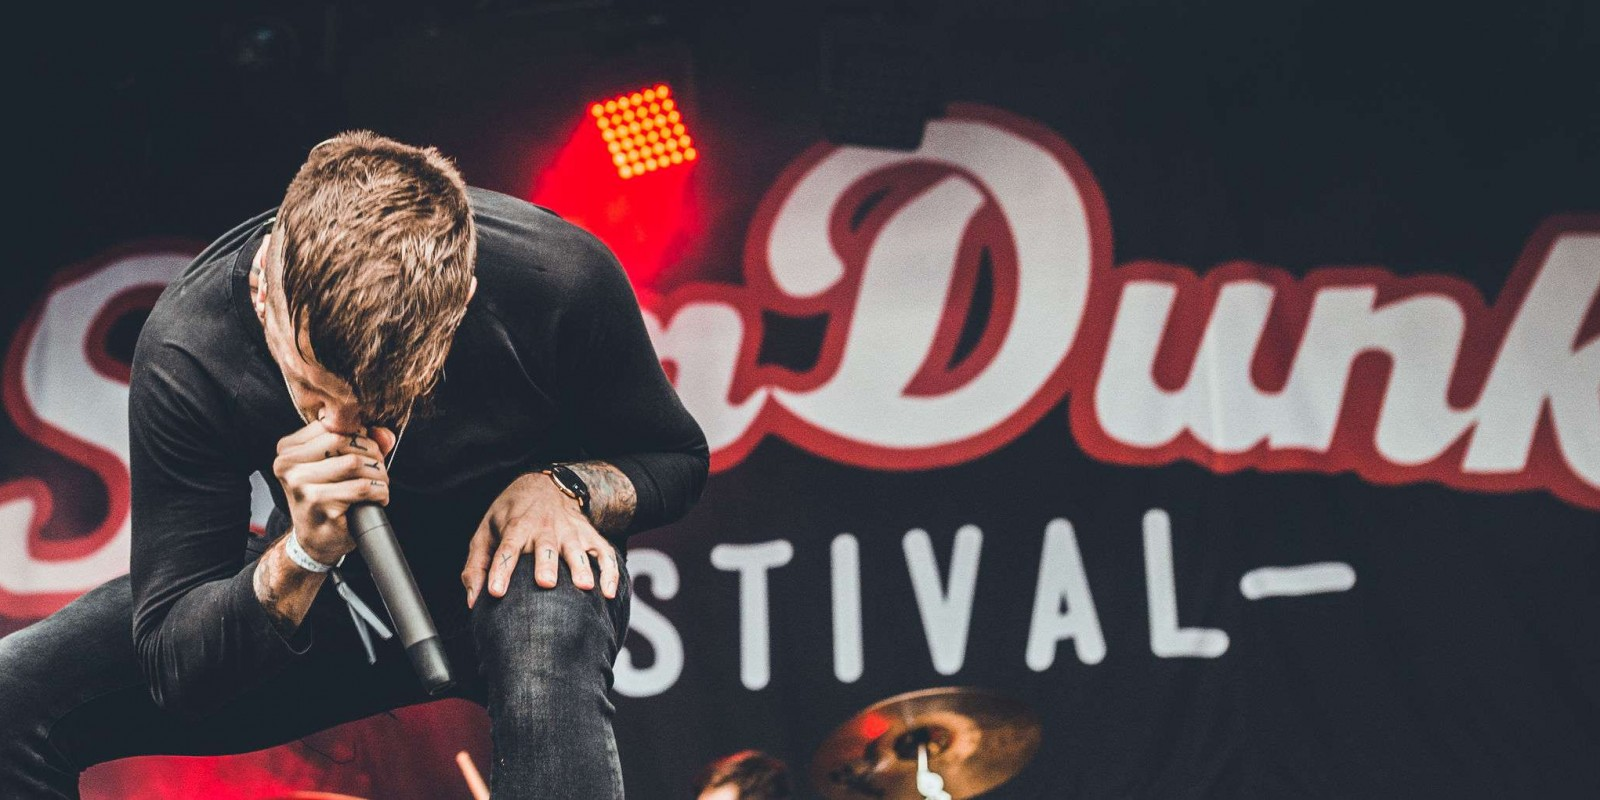 Bury Tomorrow + Monster Energy Stage at Slam Dunk